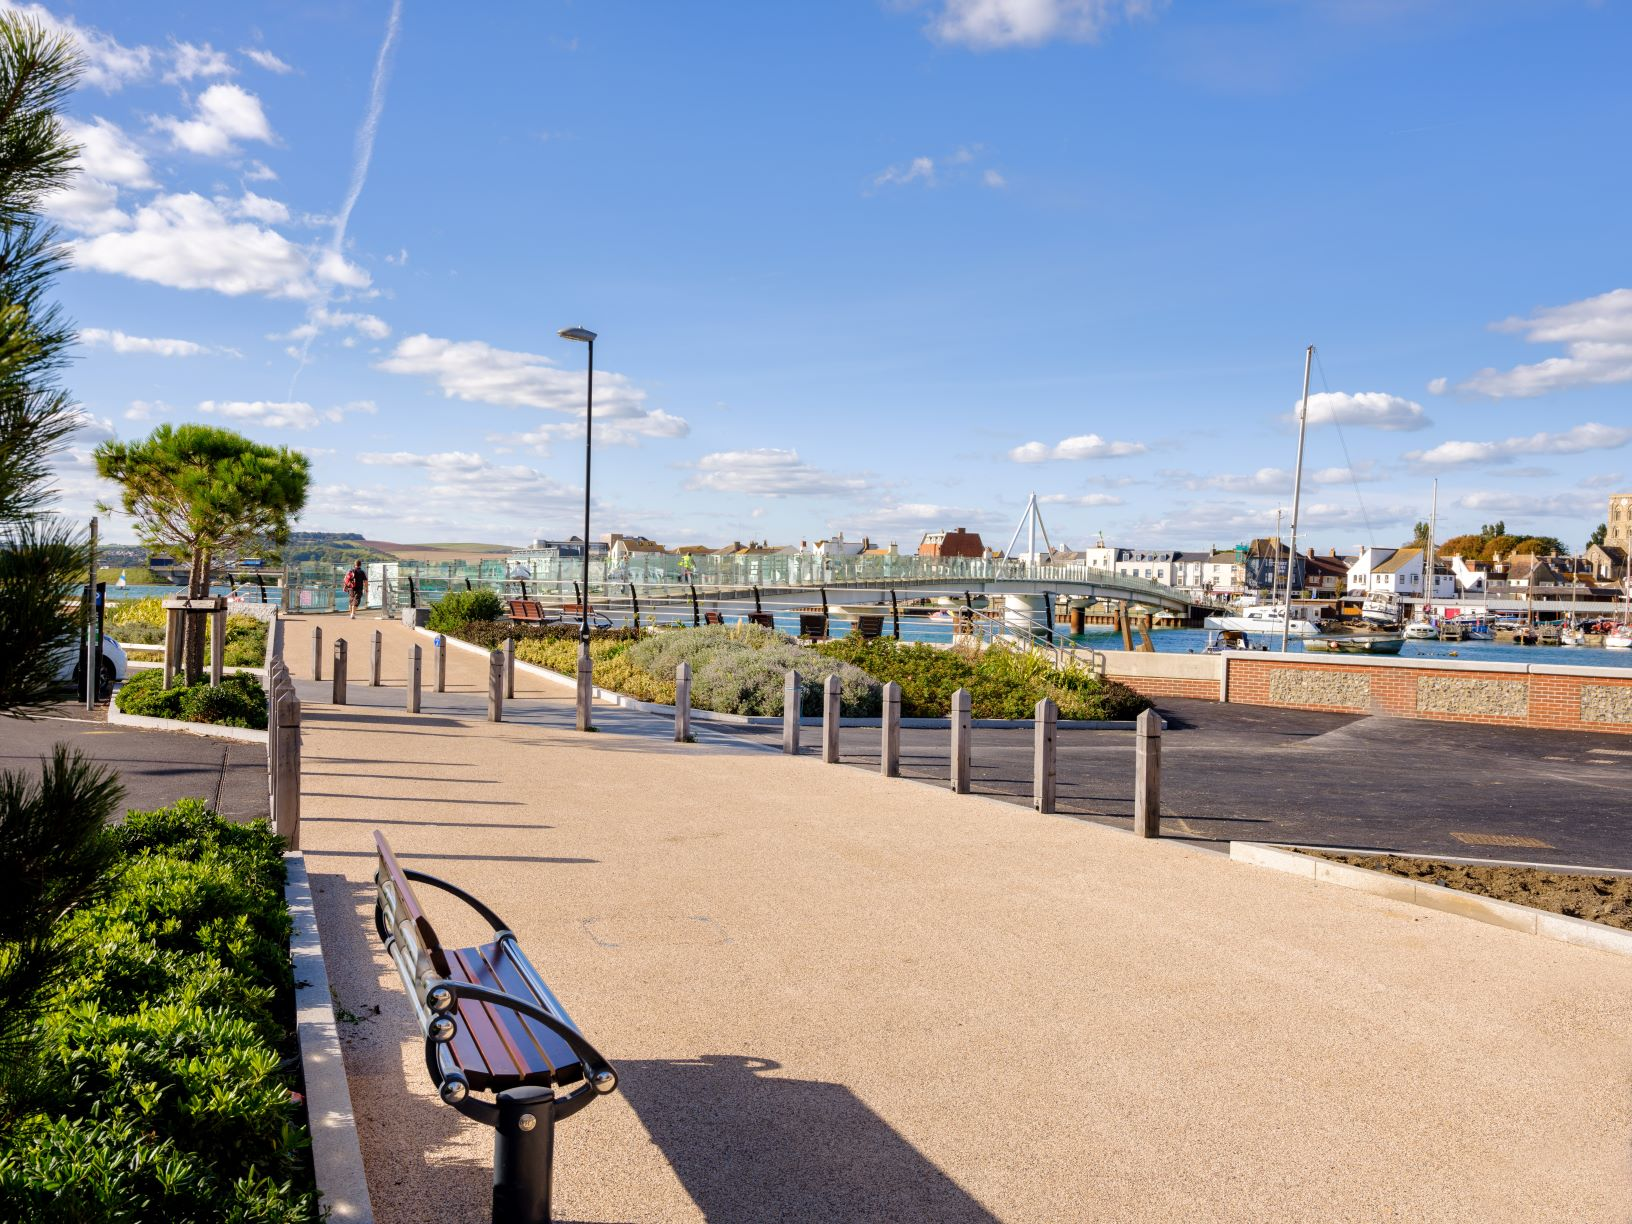 Shoreham Riverside Enhancement works